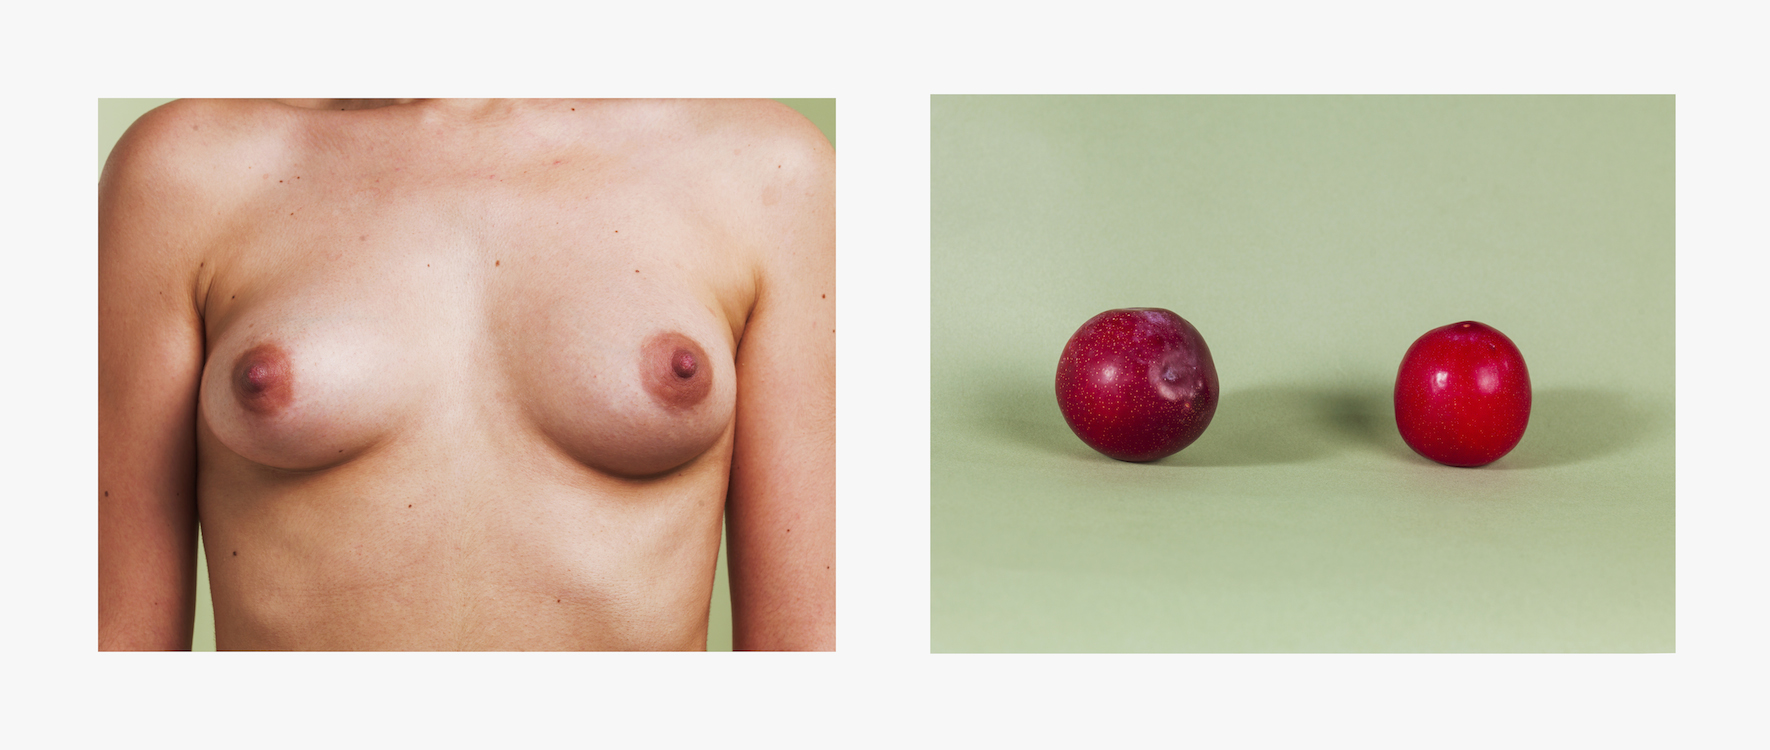 01-boobs-personal-work-charlotte-abramow-photography-paris-brussels